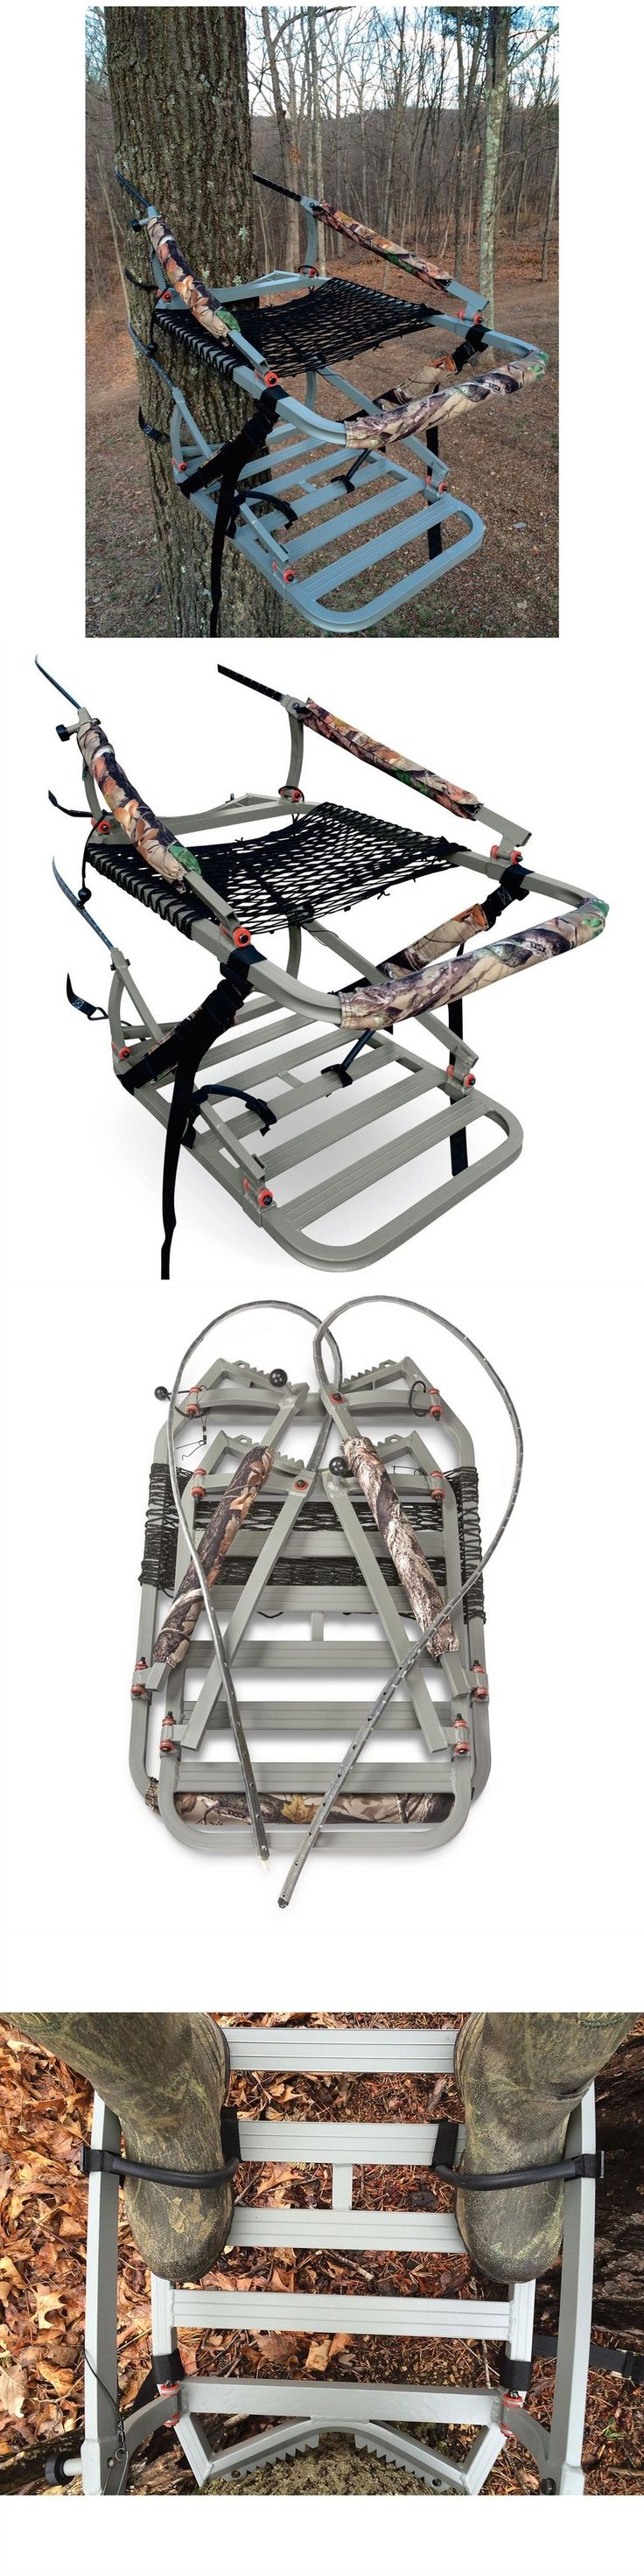 Tree Stands 52508: Tree Stand Climber Hunting Portable Outdoor Climbing Seat Big Game Deer Shooting BUY IT NOW ONLY: $201.99